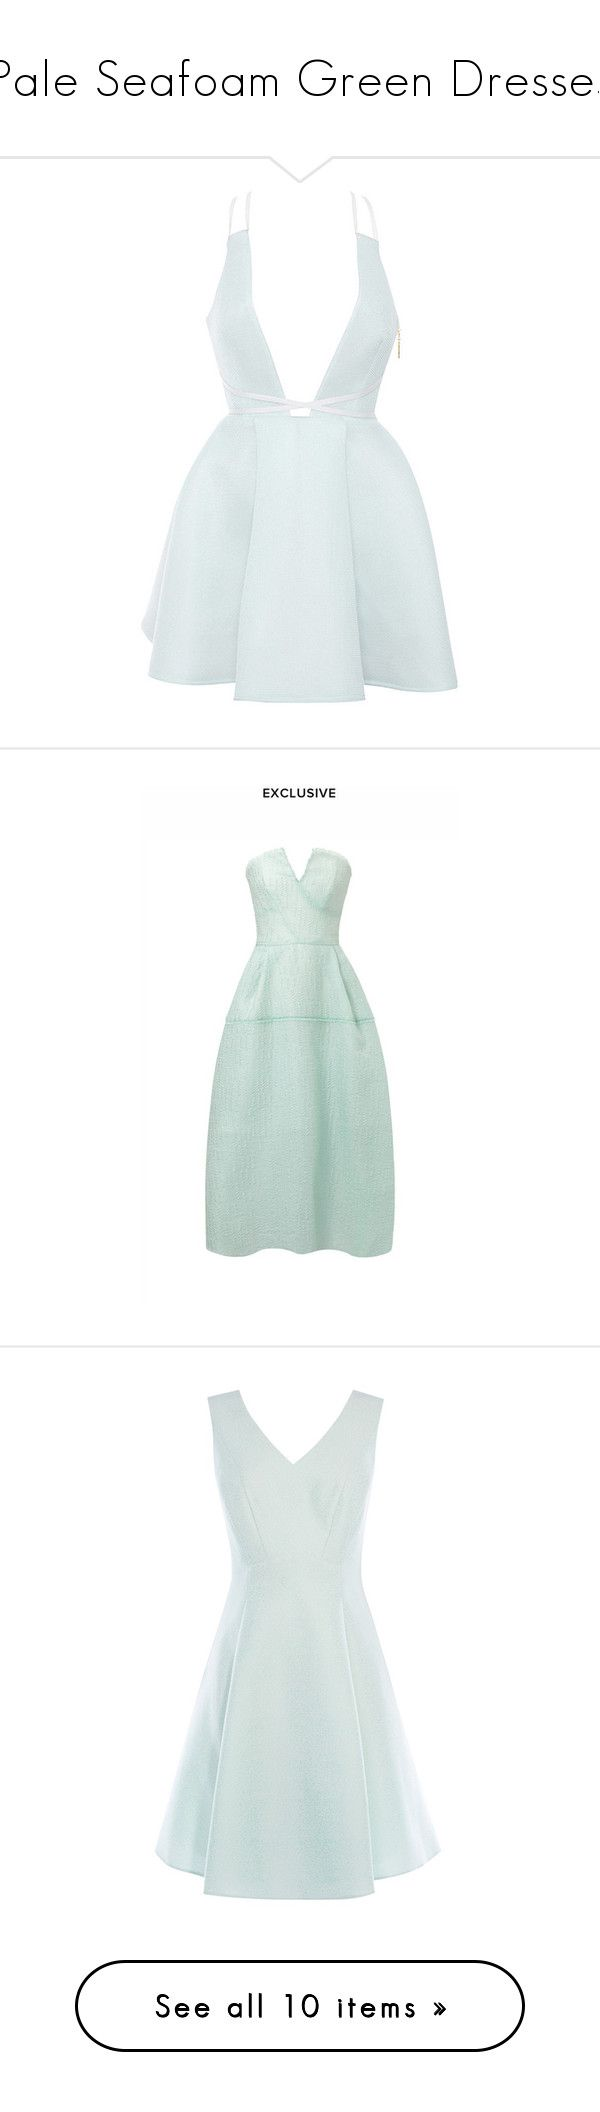 """Pale Seafoam Green Dresses"" by tegan-b-riley on Polyvore featuring dresses, light blue skater skirt, wrap dress, flared skirt, light blue party dress, day party dresses, green, midi, evening cocktail dresses and rose cocktail dress"